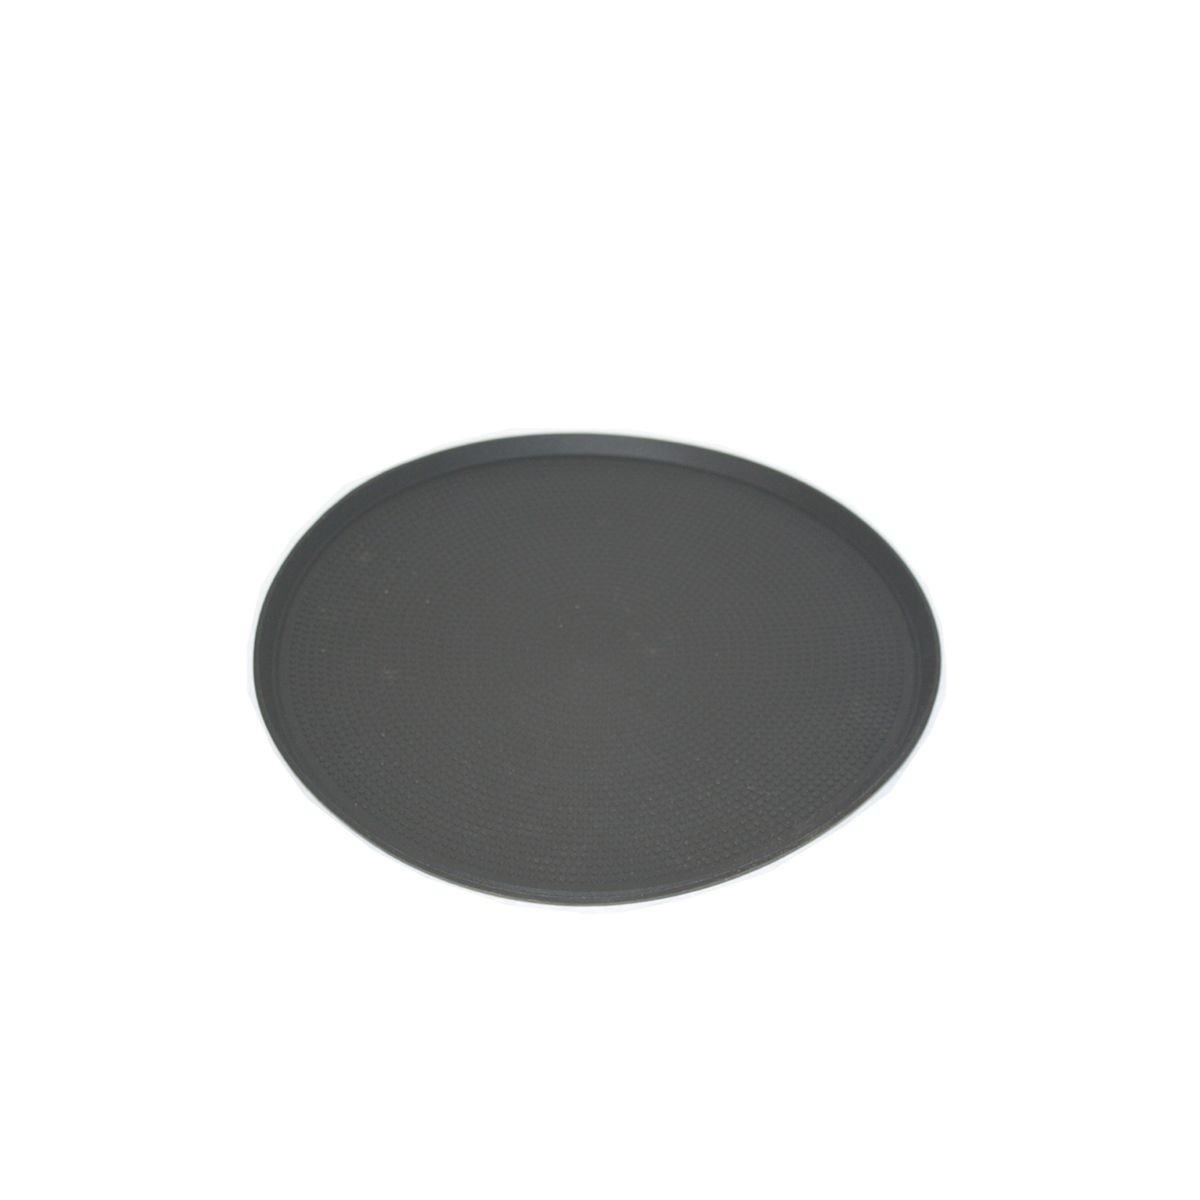 Service Ideas TR-RI Rubber Insert Only for TR1412RI Tray